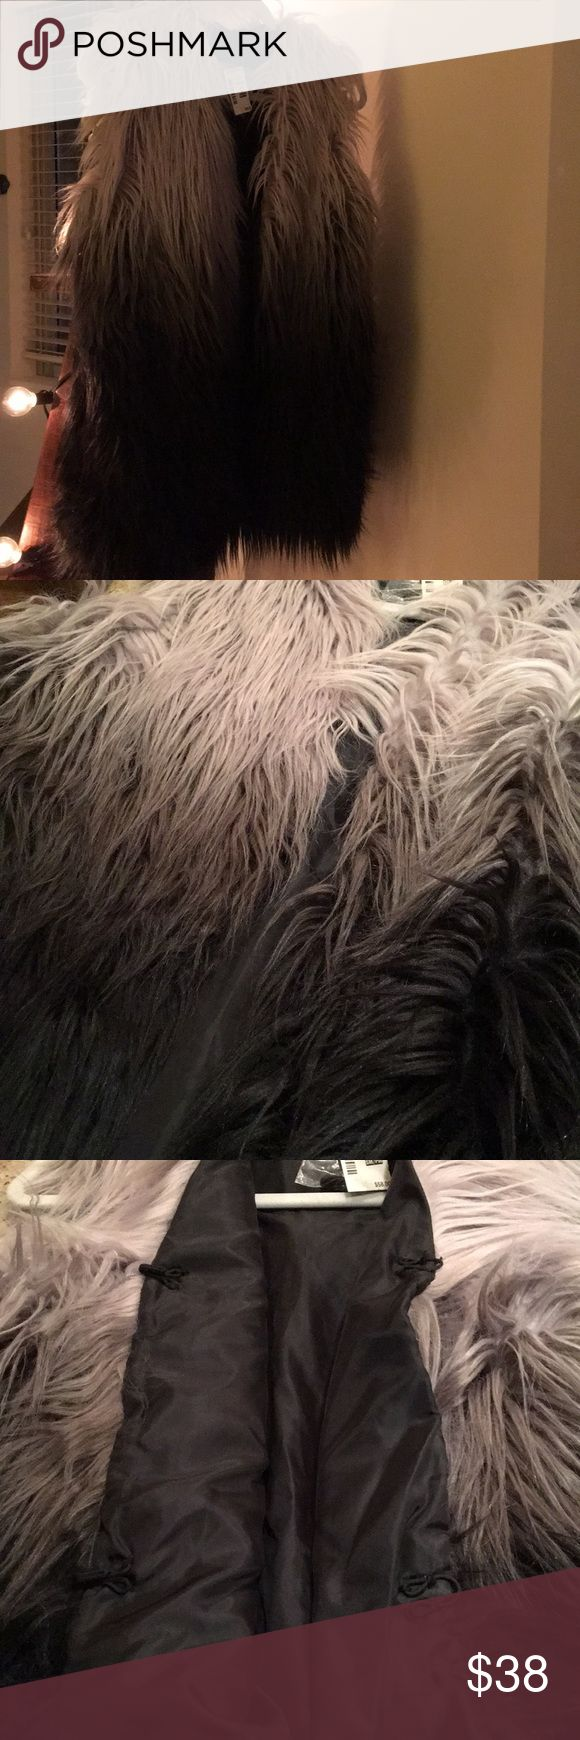 "Faux mohair vest 😻 So so so soft! The blend and material isn't matted, it's super fluffy without injury to any animals 😽 you can still wear a ""fur"" vest! It's an ombré delight bleeding from a light gray which looks like a sweet soft touch of a purple hue, to darker gray and then black 🖤 It has two deep pockets, as you see there are two hooks for closure as well. It also comes with an extra hook in a baggie👌🏼Please don't hesitate to ask any questions🛍 Aeropostale Jackets & Coats Vests"